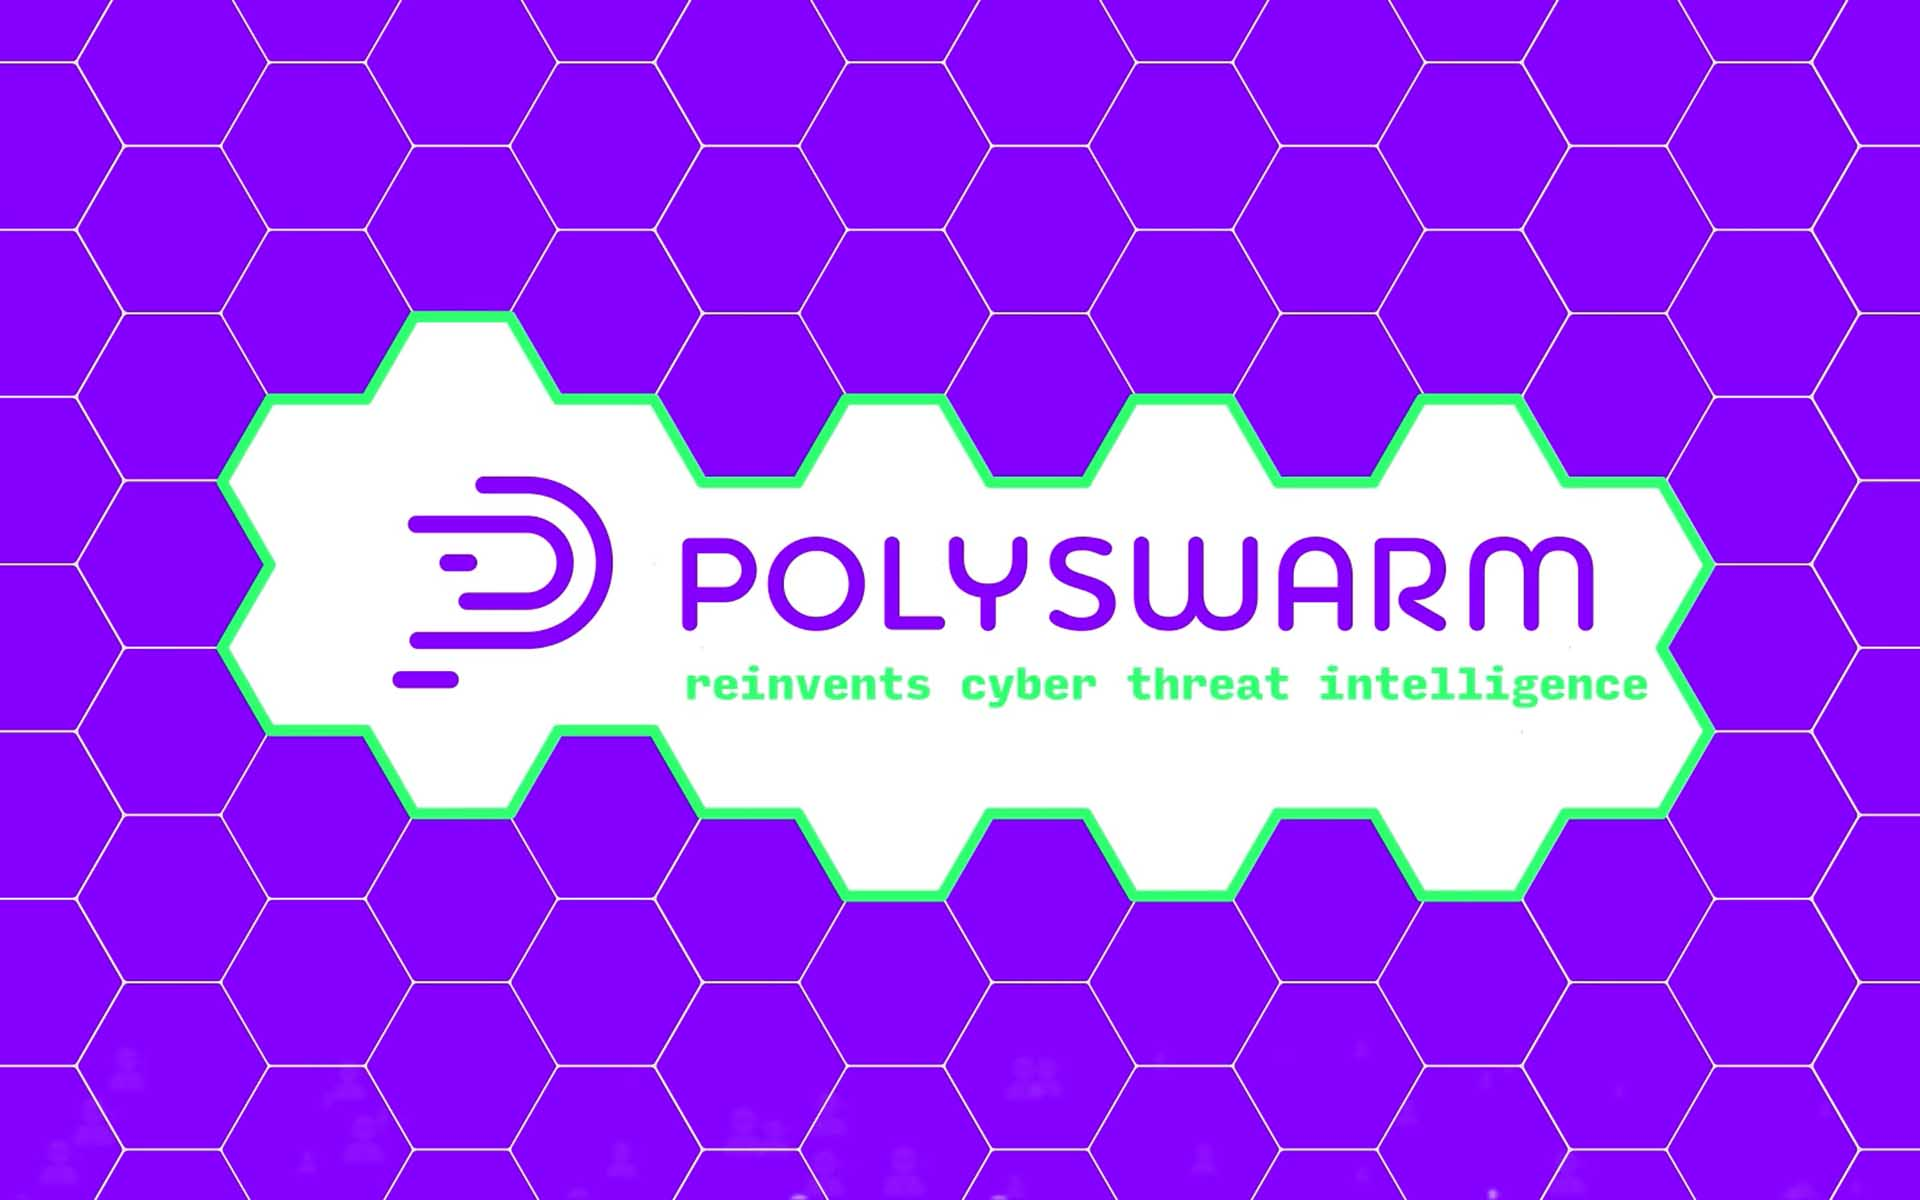 PolySwarm Raises $5 Million in Ongoing Nectar Public Token Sale